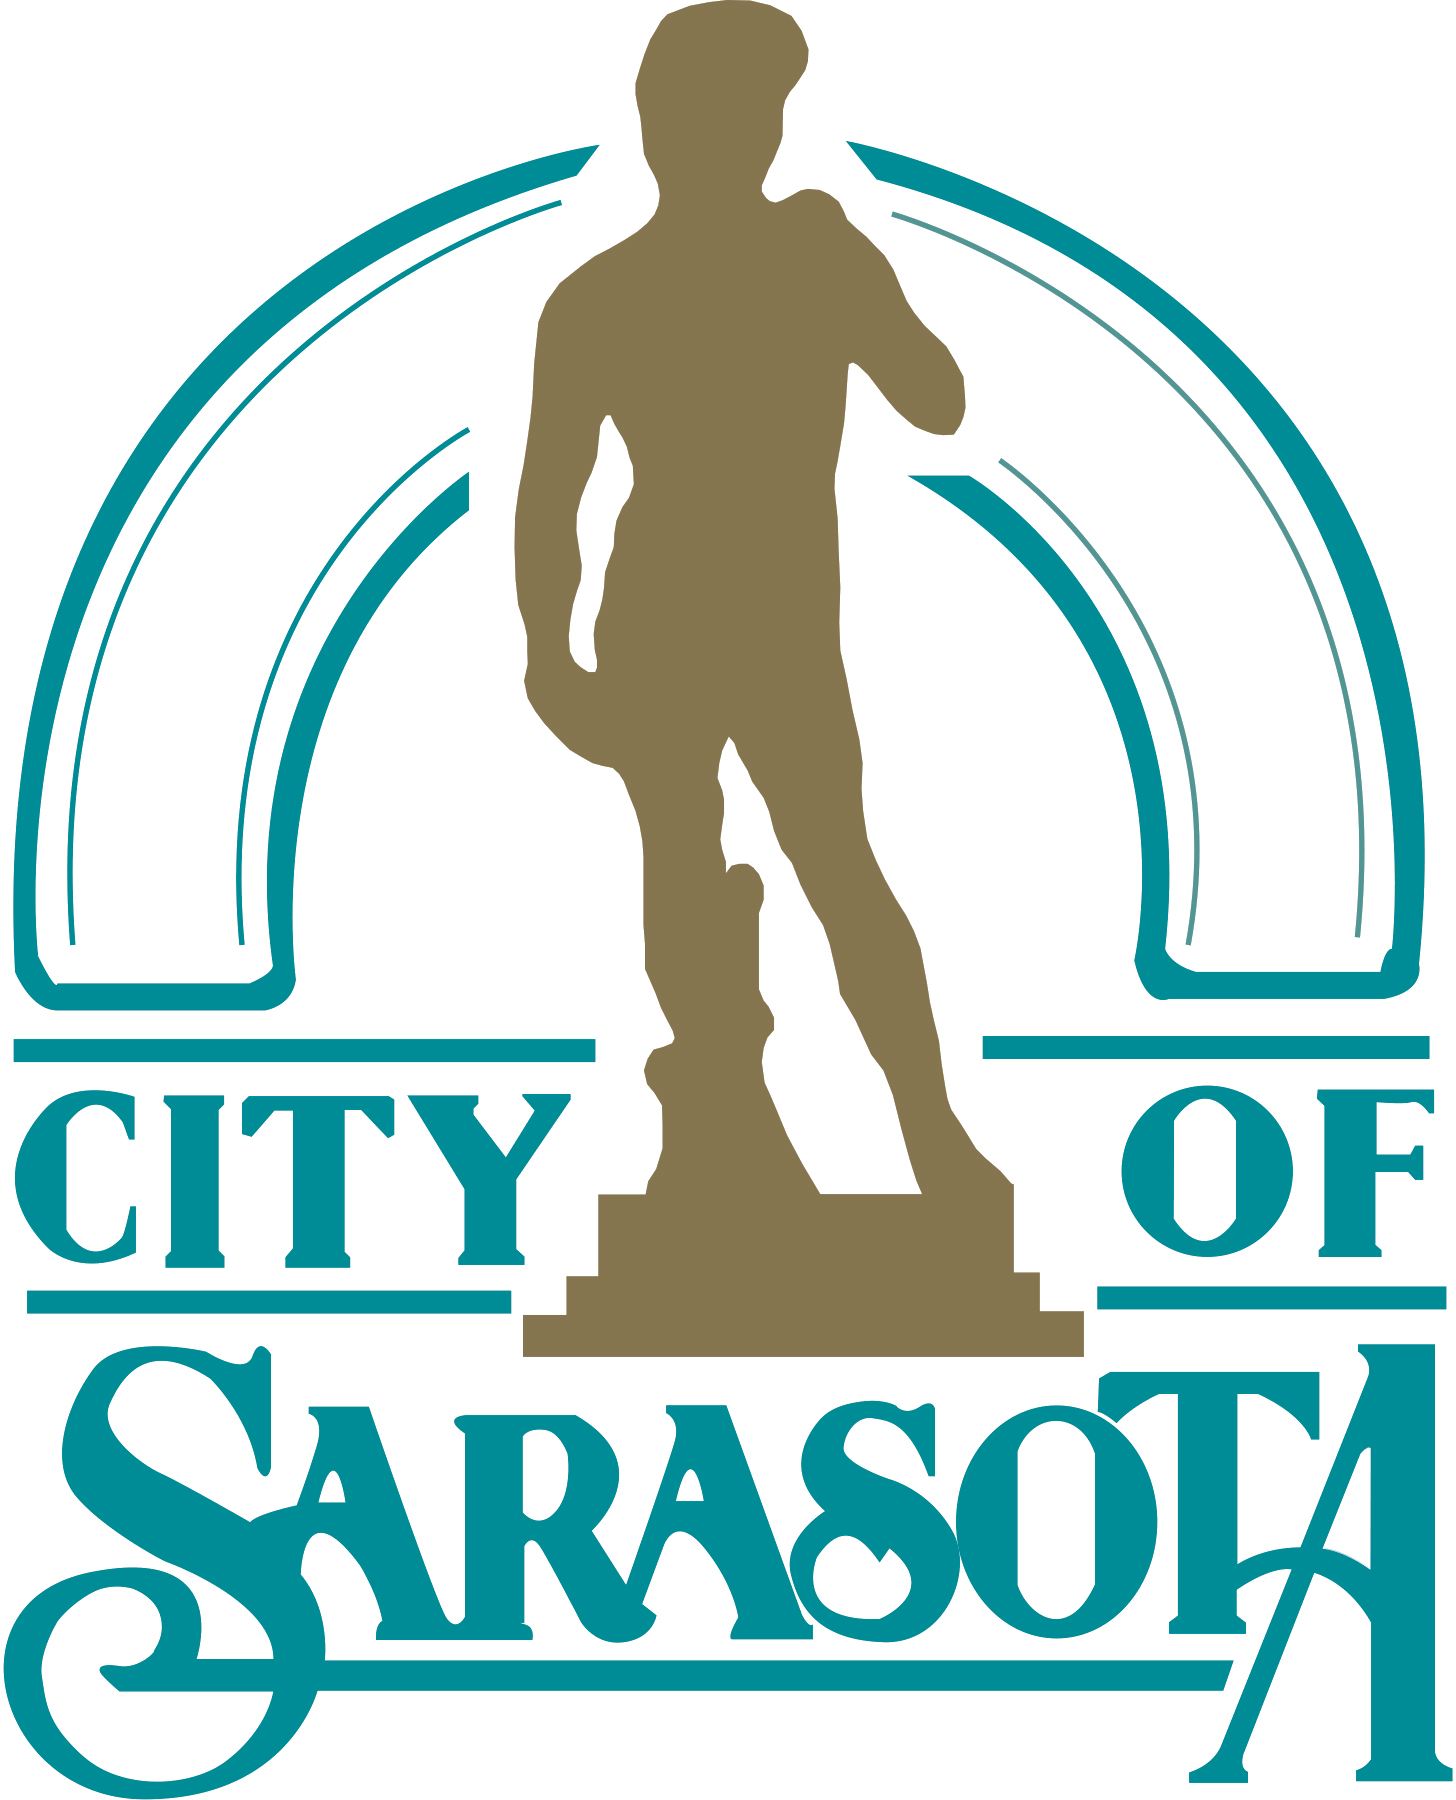 sarasota city government logo